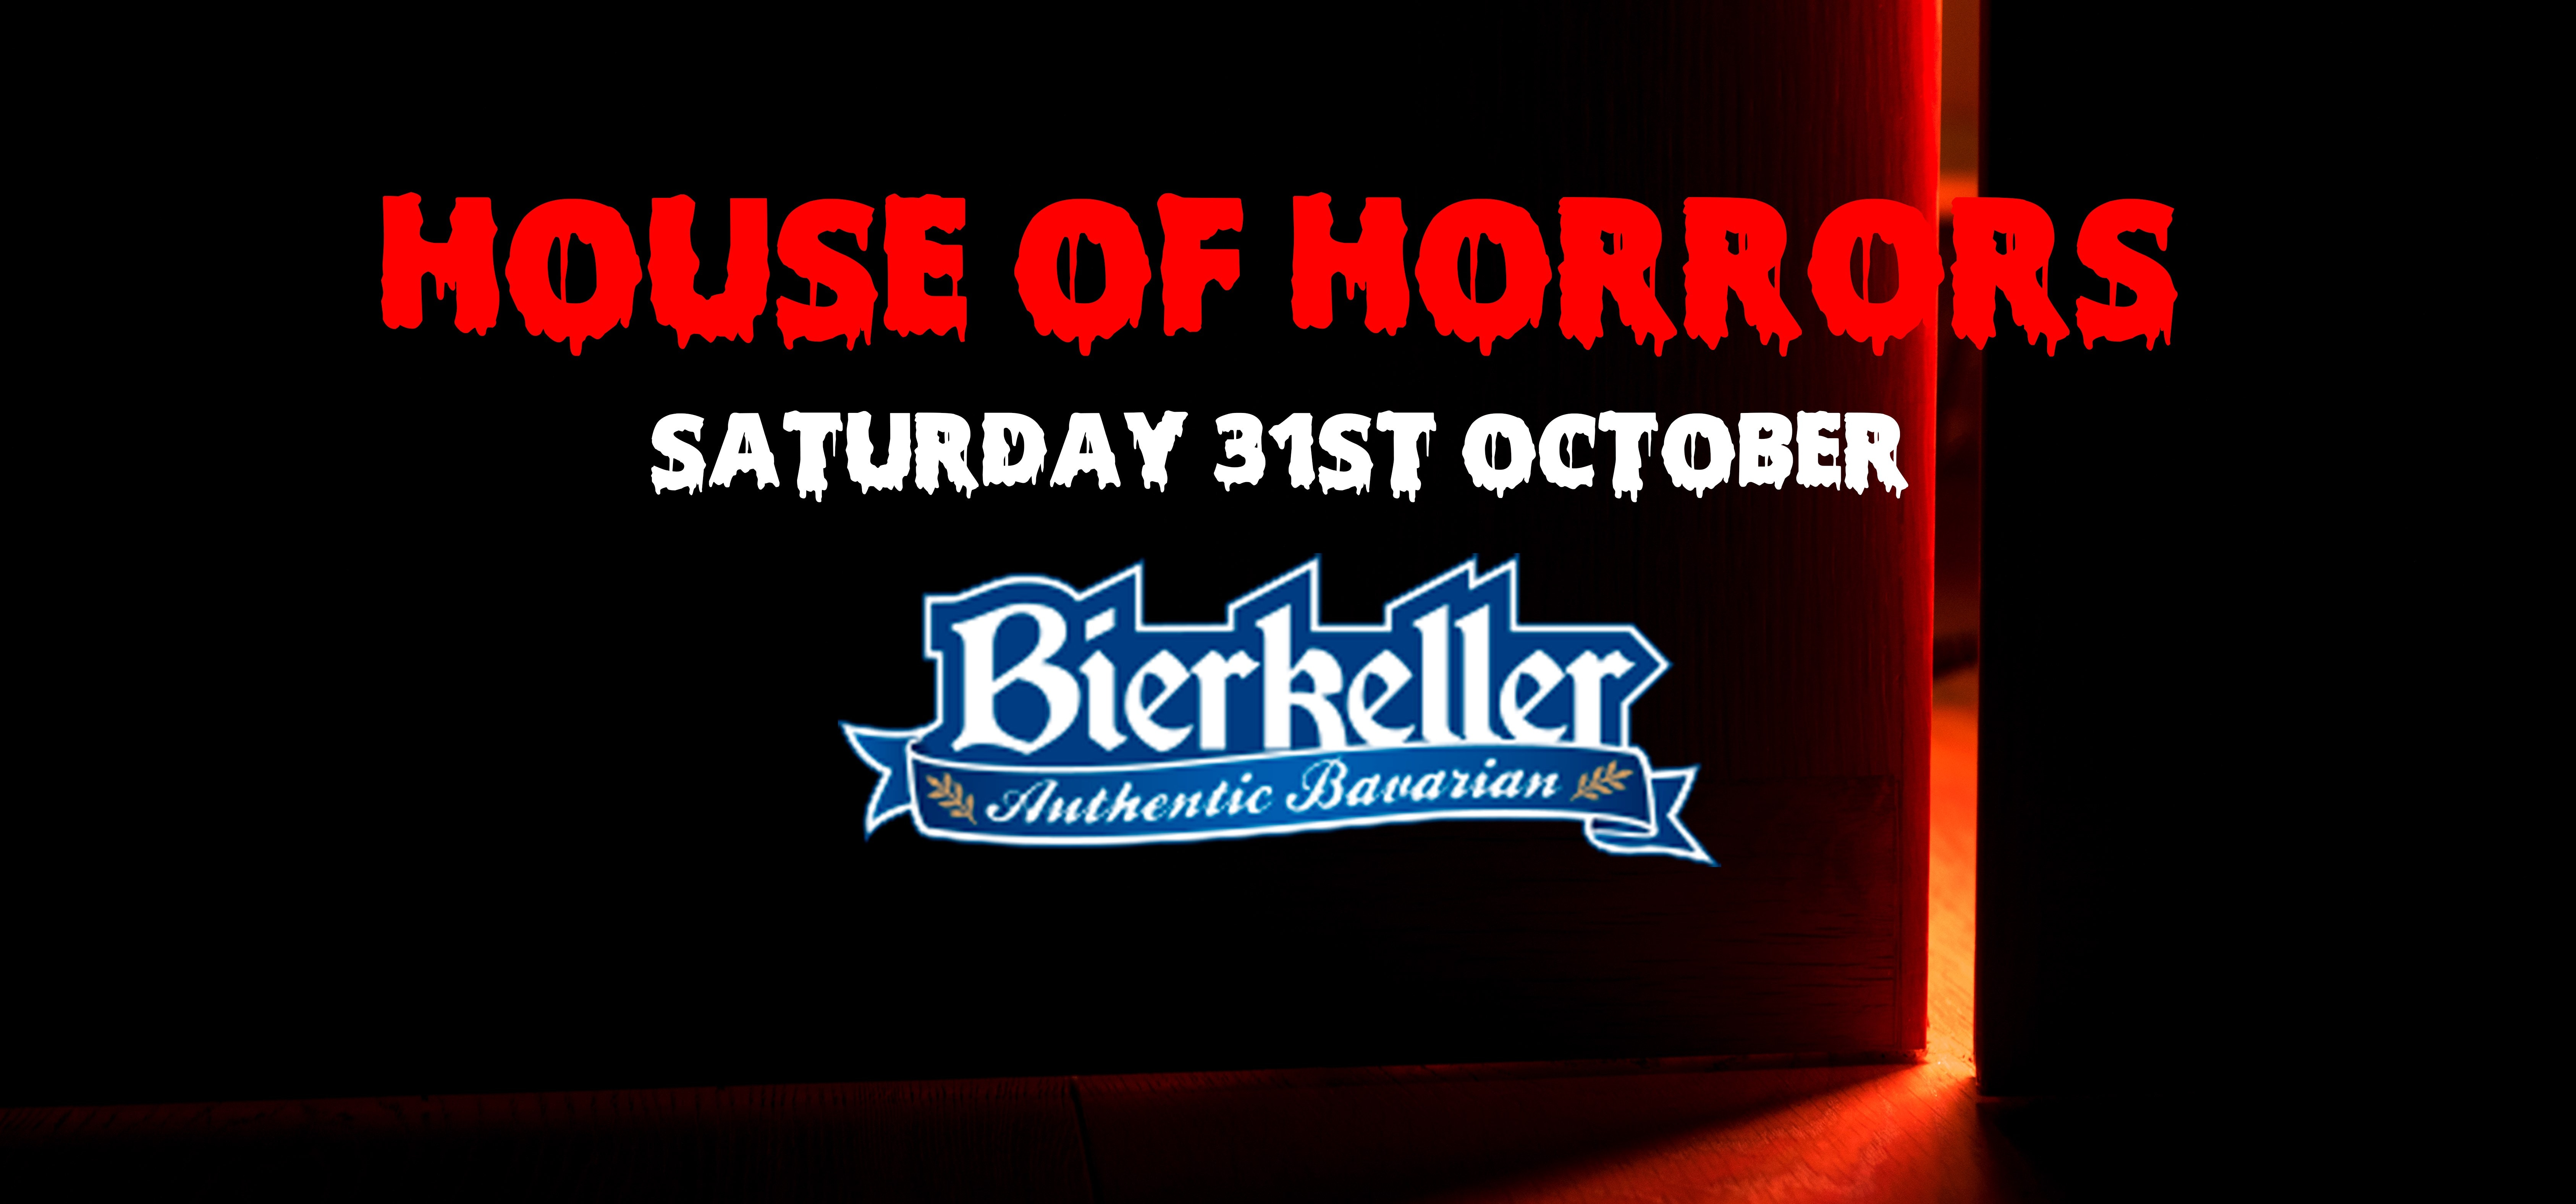 🎃🍻HALLOWEEN HOUSE OF HORRORS 🍻👻🇩🇪 BIERKELLER 🥨 (Broad Street)!